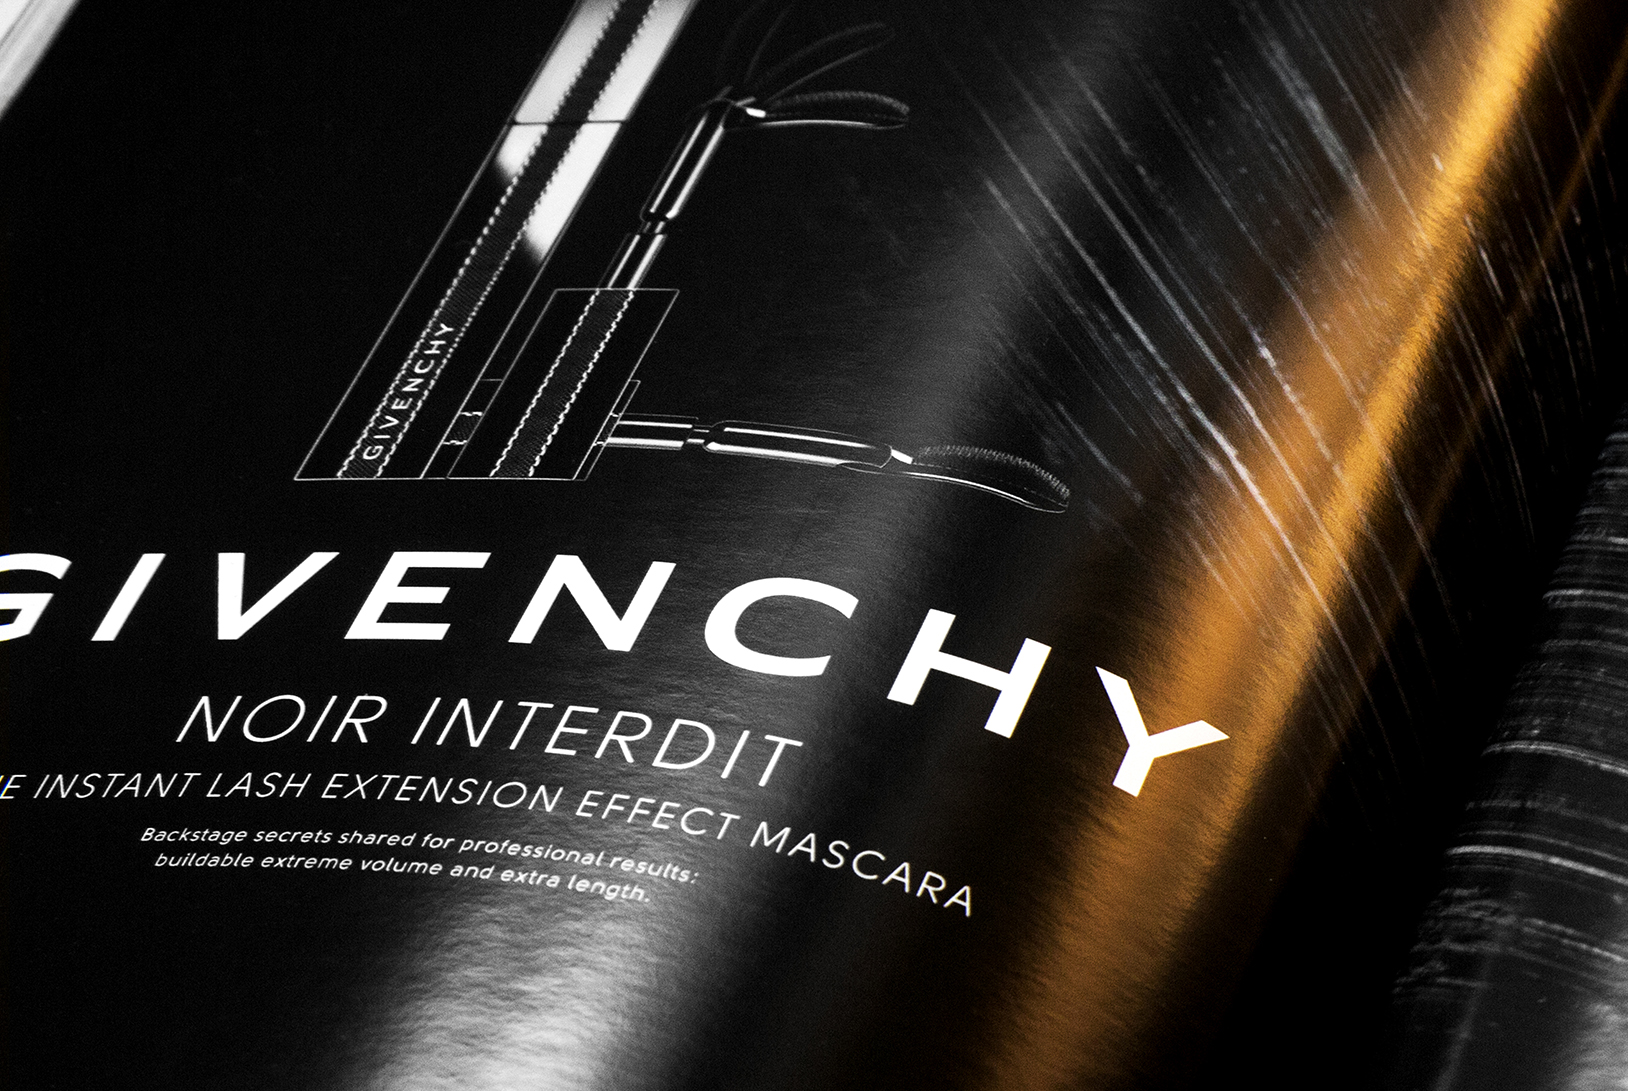 CARLA COSTE / ART DIRECTOR GIVENCHY – Noir Interdit Relaunch